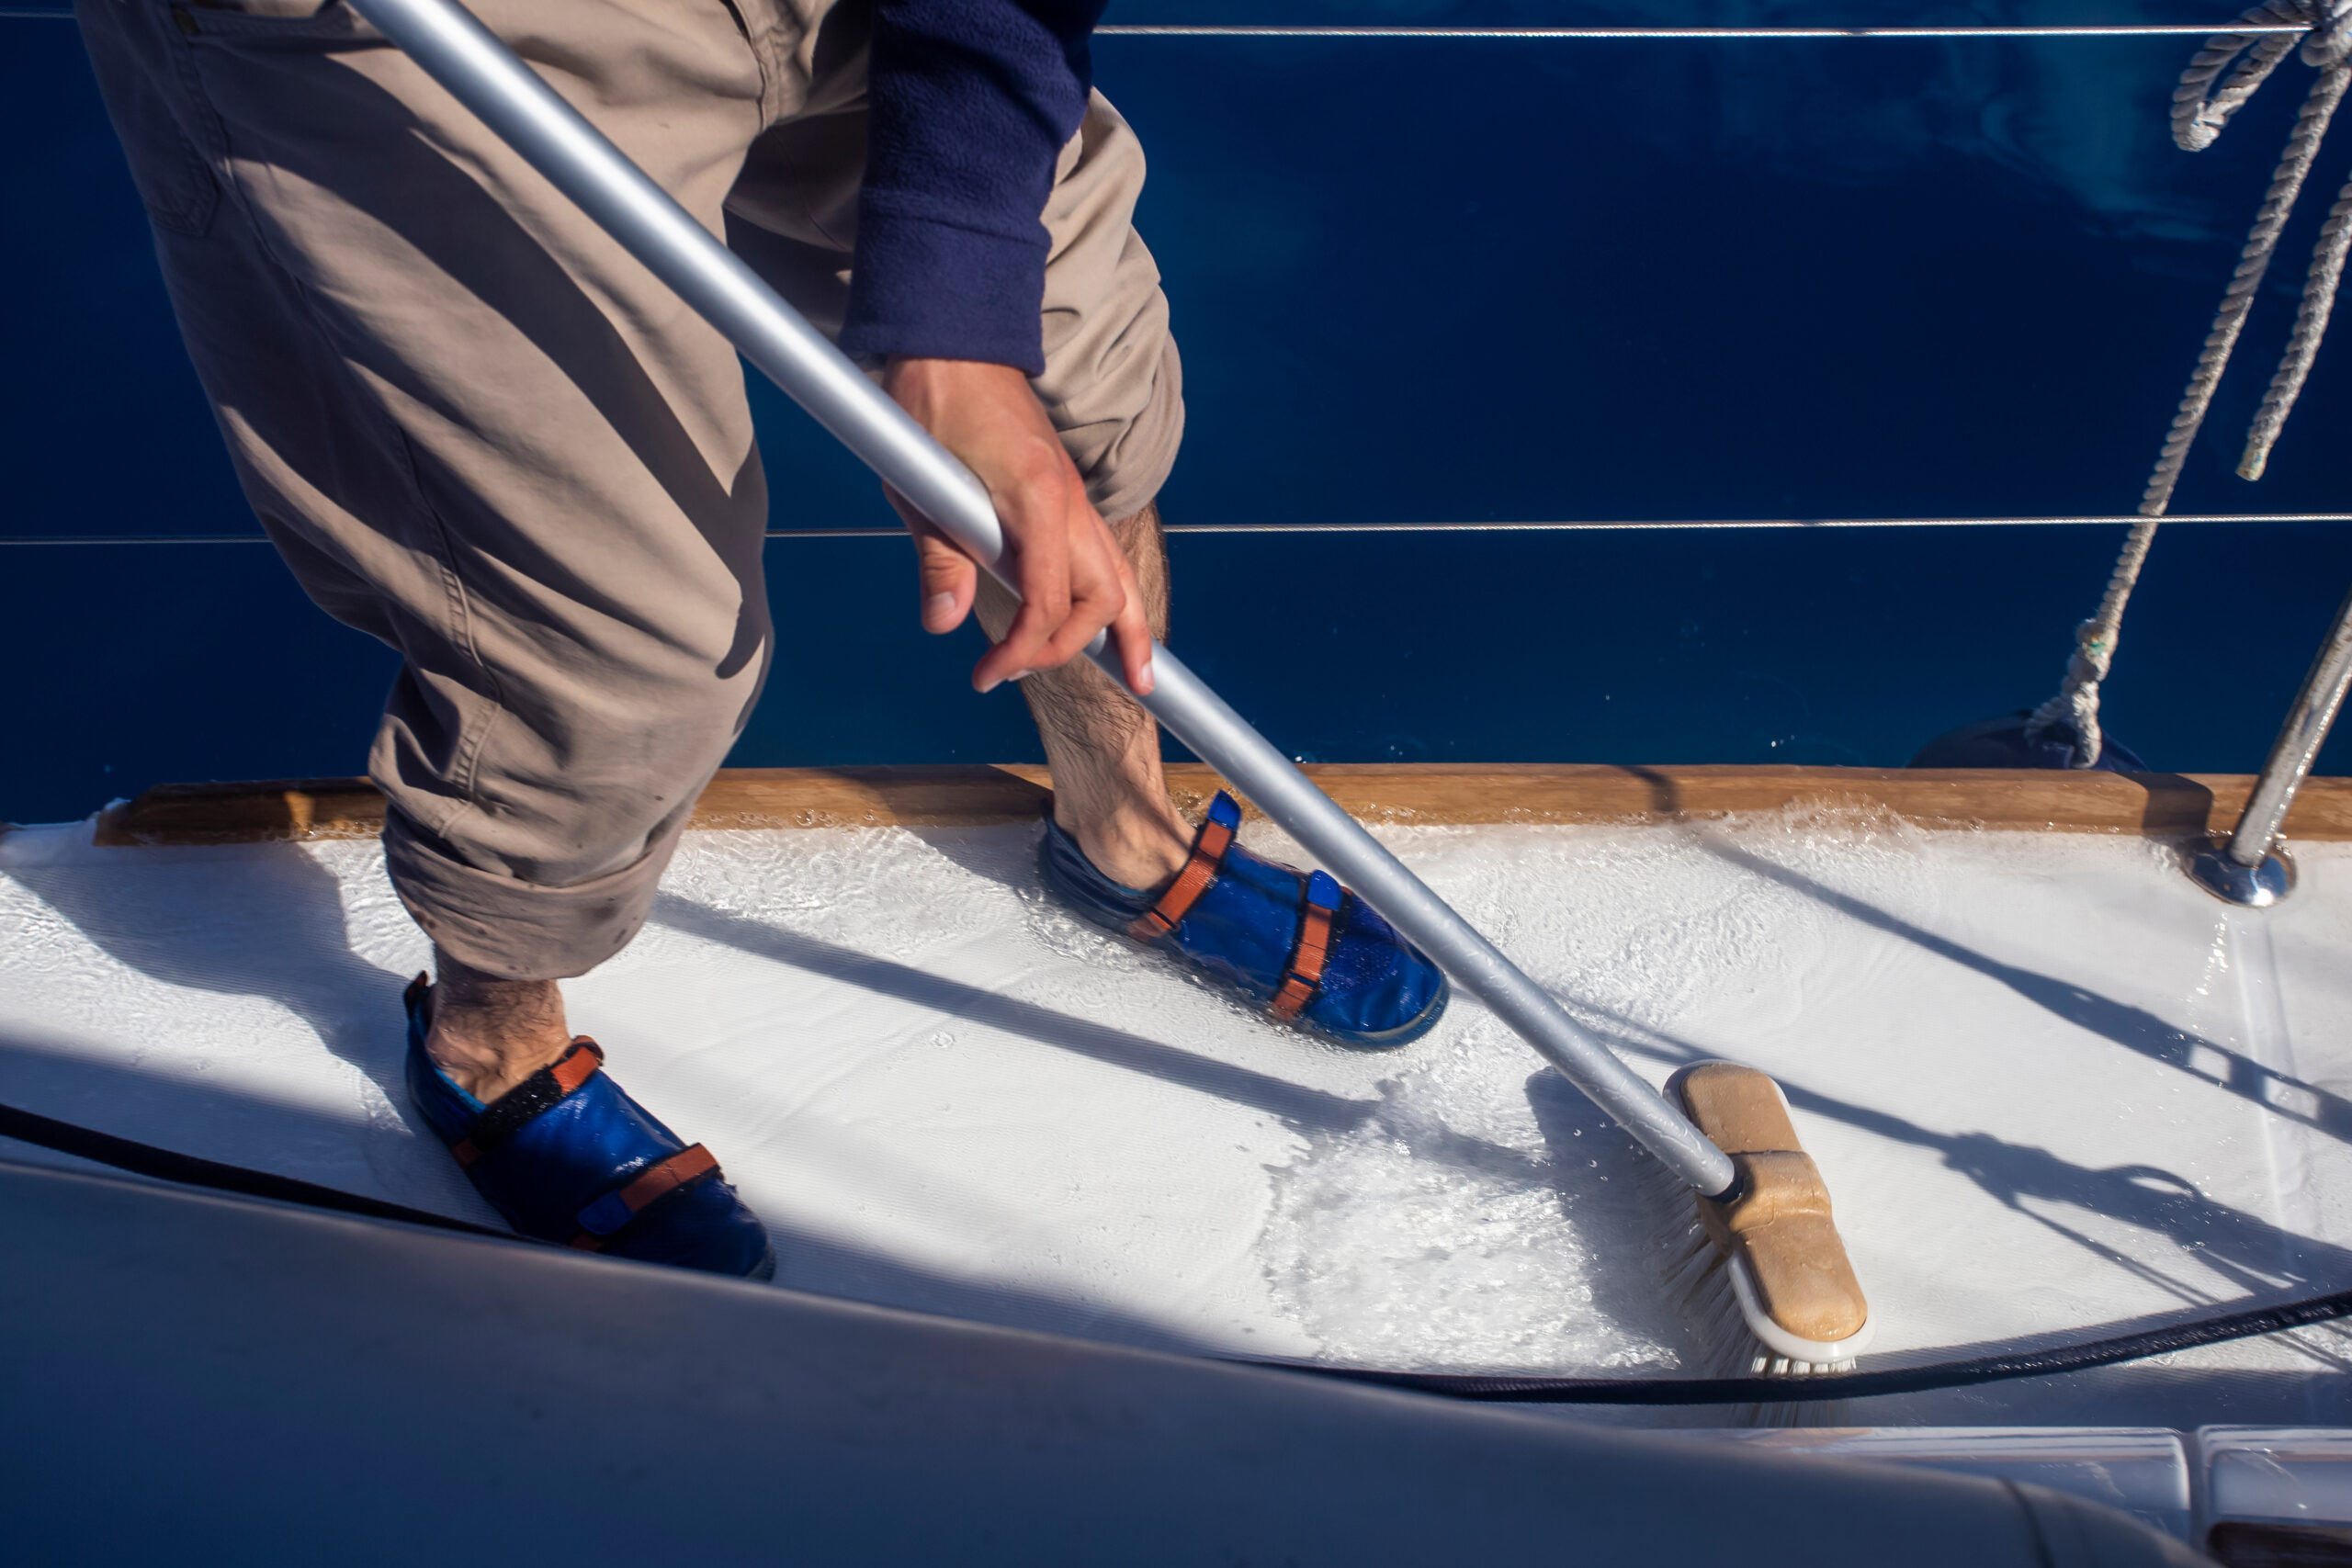 How Often Should Your Boat Be Cleaned? - Cleaning & Detailing Services